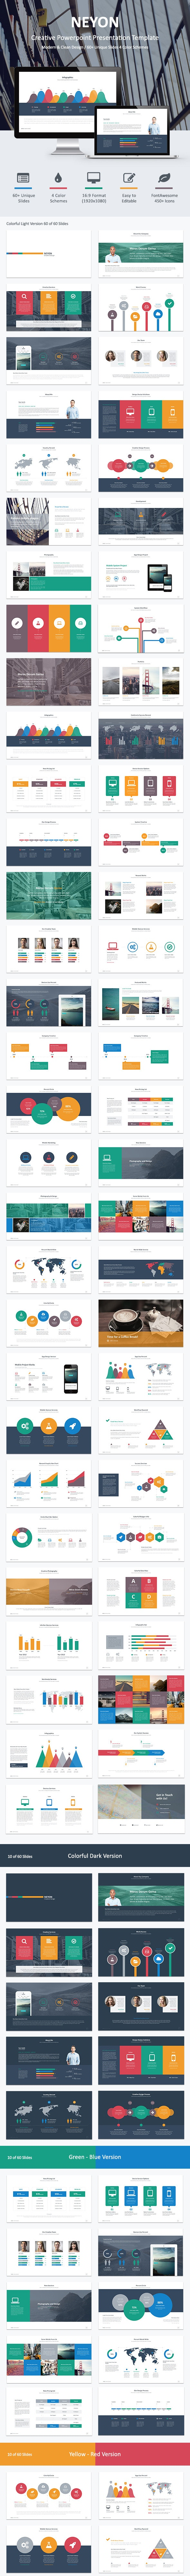 Neyon - Powerpoint Template - PowerPoint Templates Presentation Templates